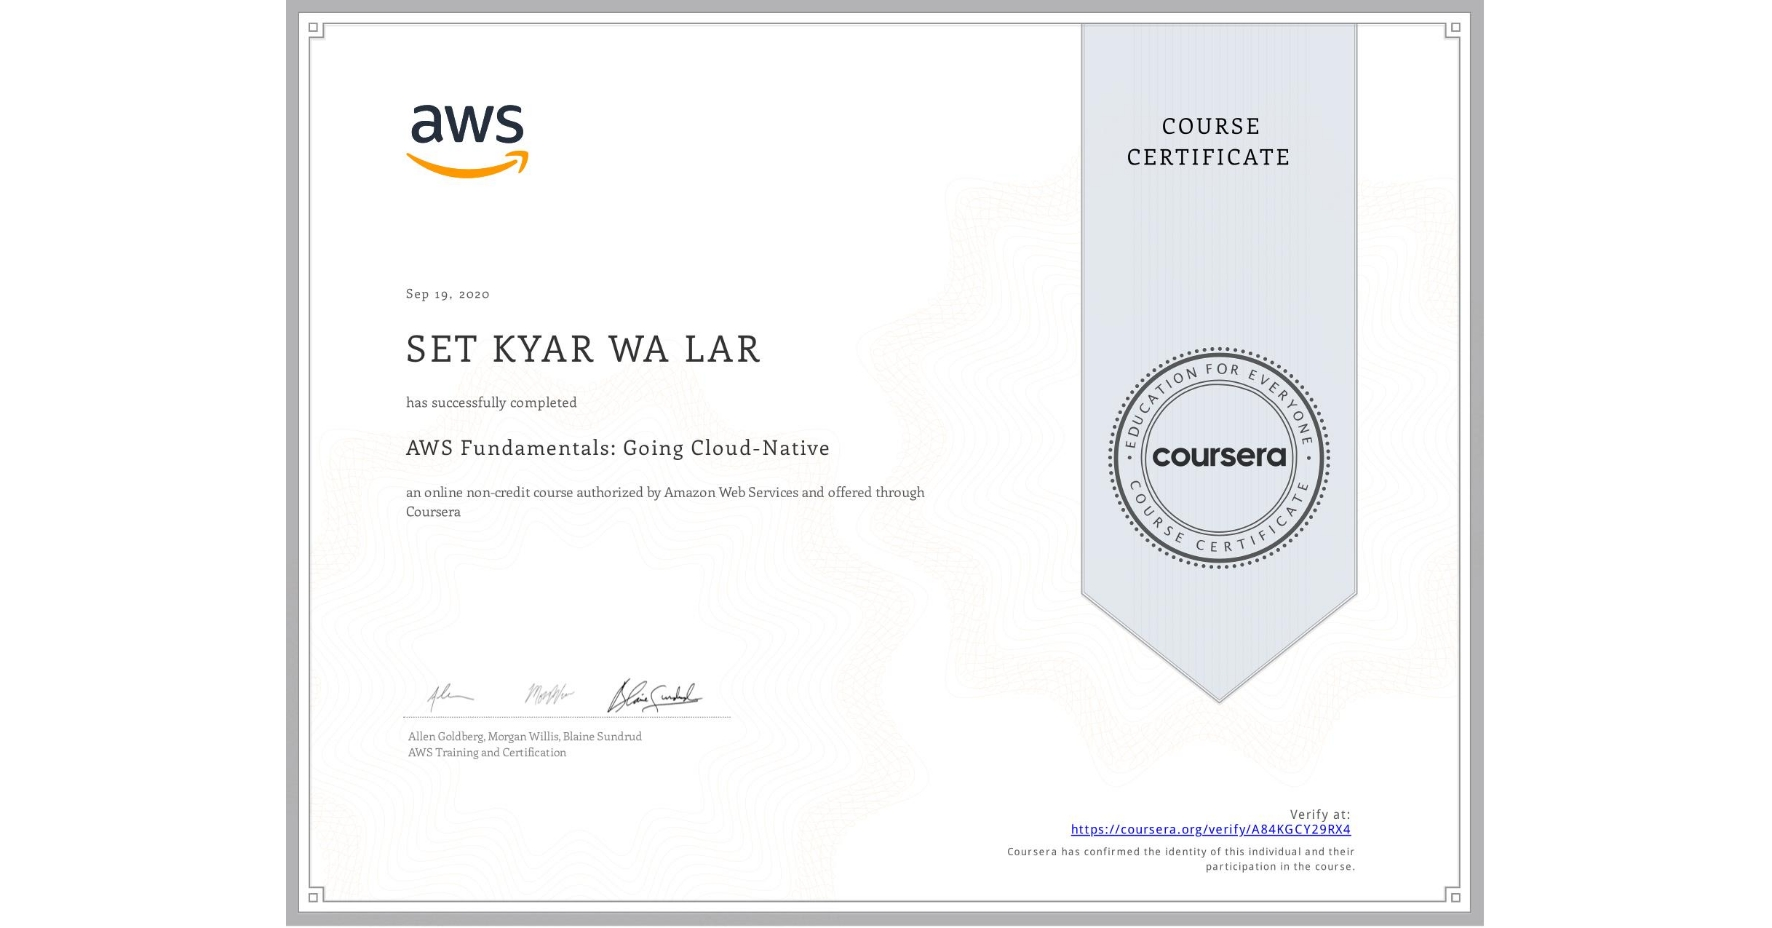 View certificate for  SET KYAR WA LAR, AWS Fundamentals: Going Cloud-Native, an online non-credit course authorized by Amazon Web Services and offered through Coursera